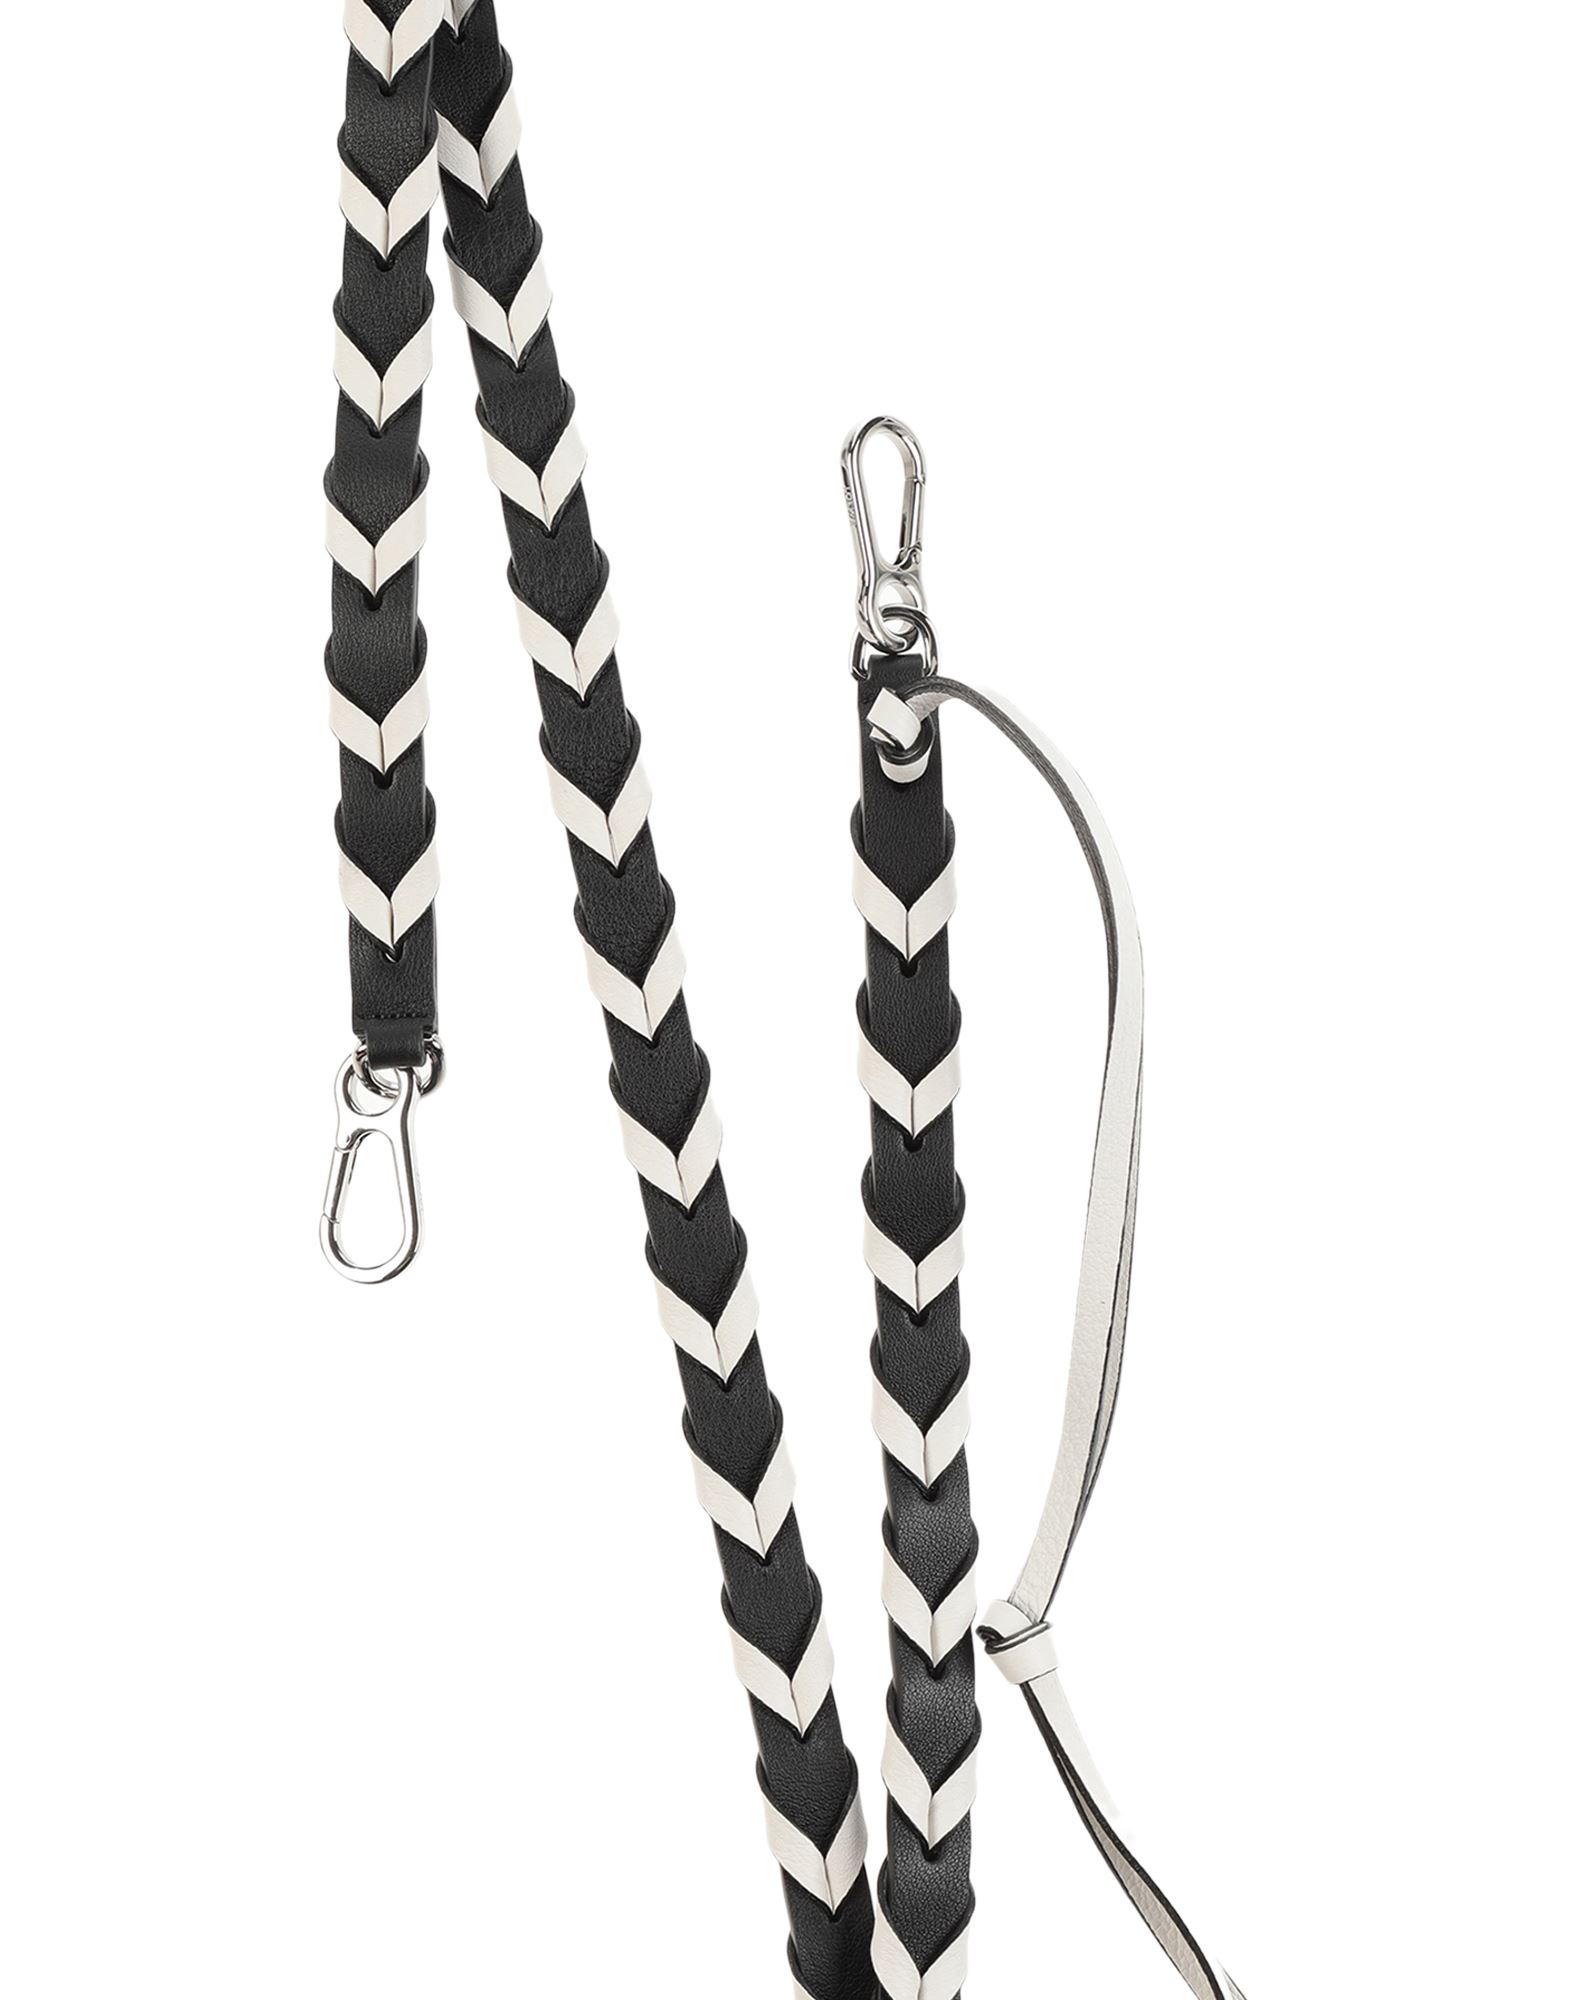 LOEWE Shoulder straps. leather, logo, two-tone, contains non-textile parts of animal origin. Soft Leather